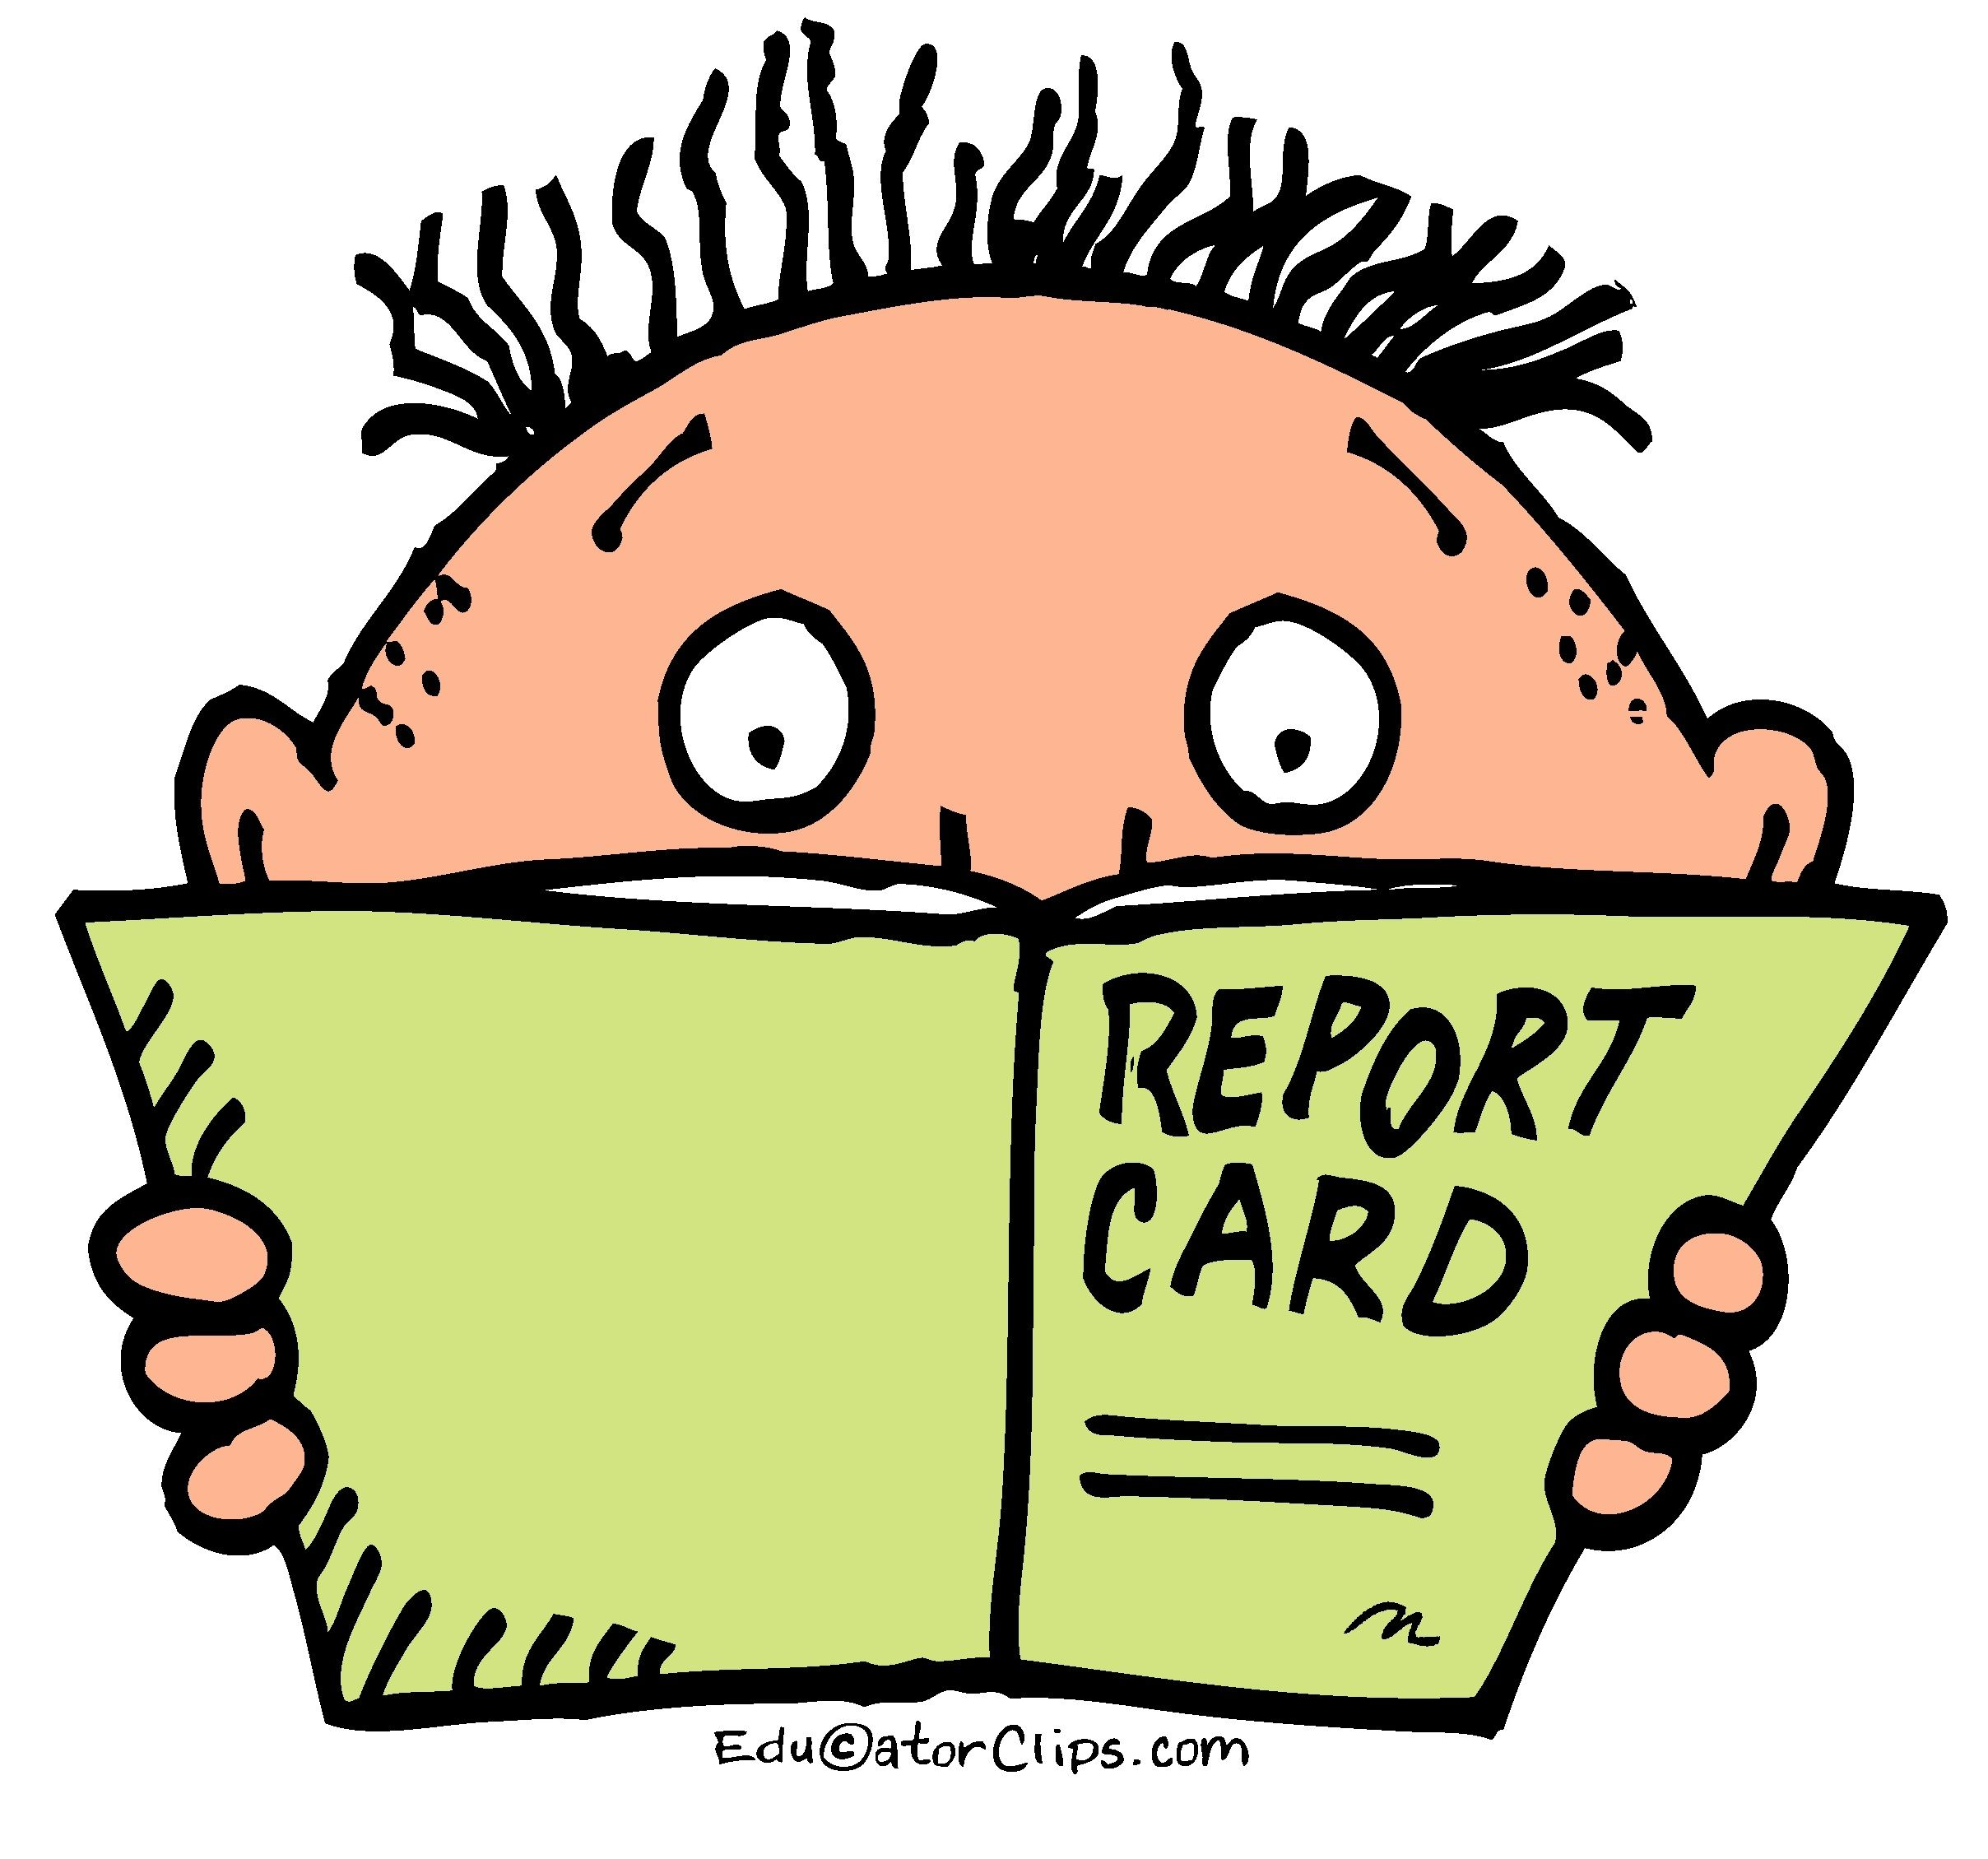 26++ Report card clipart free ideas